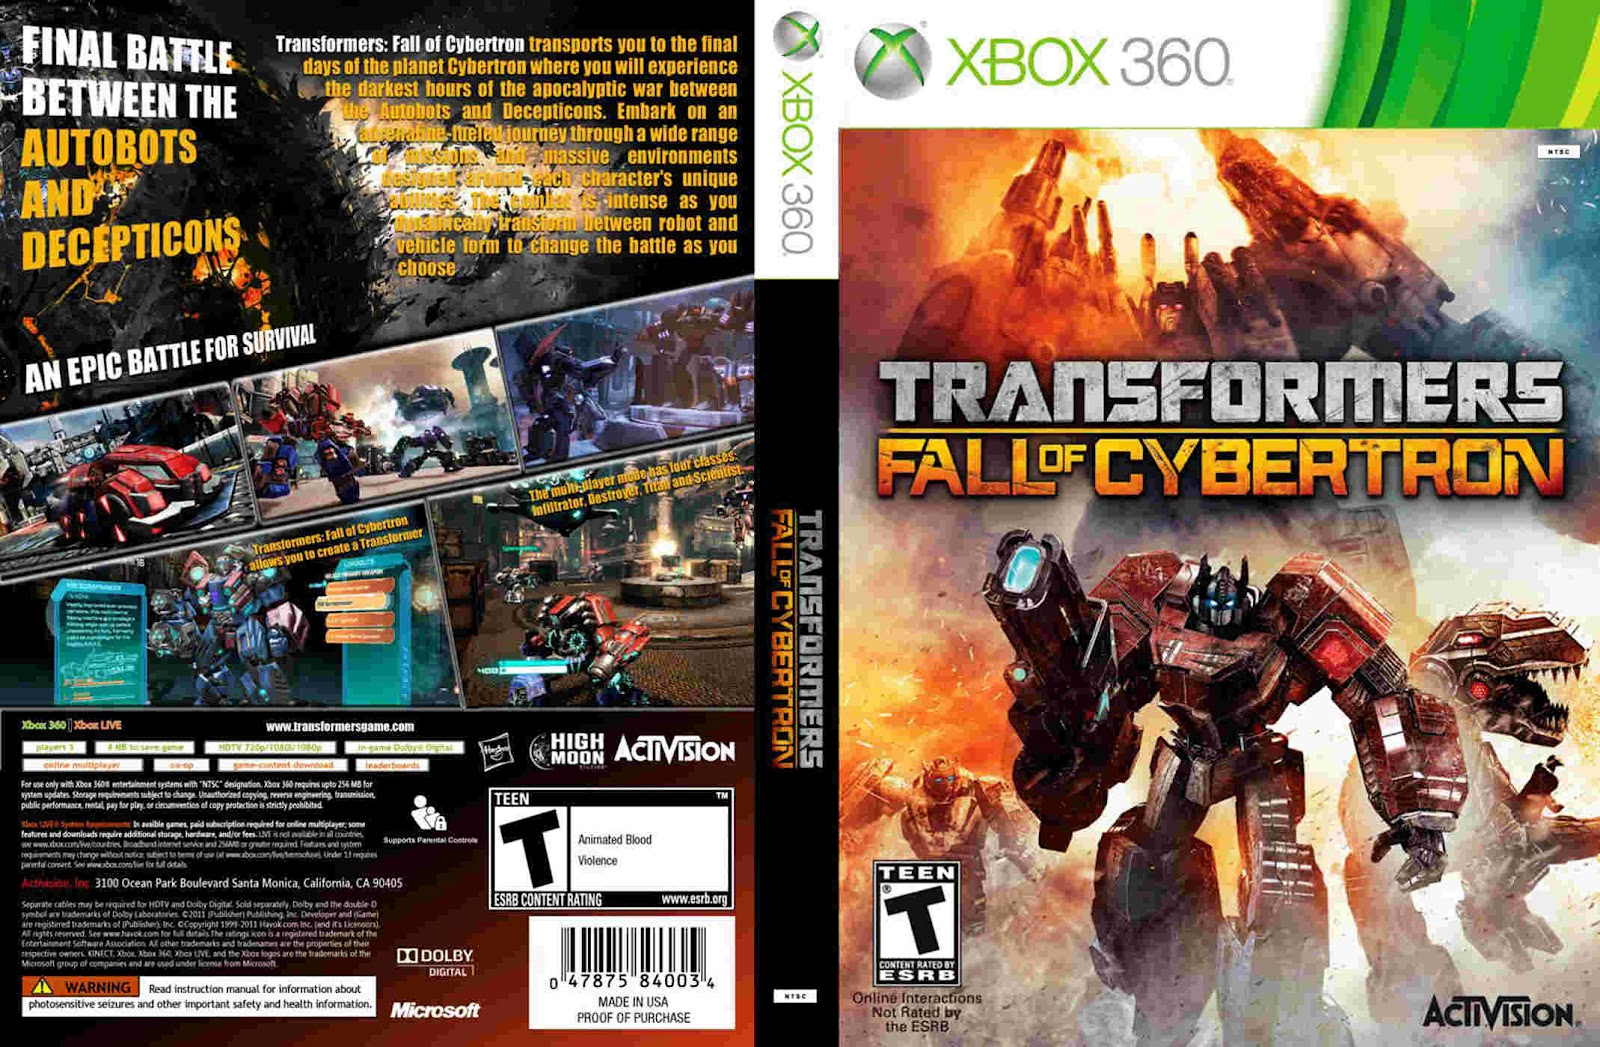 Xbox 360 Transformers Fall of Cybertron of Cybertron / Xbox 360